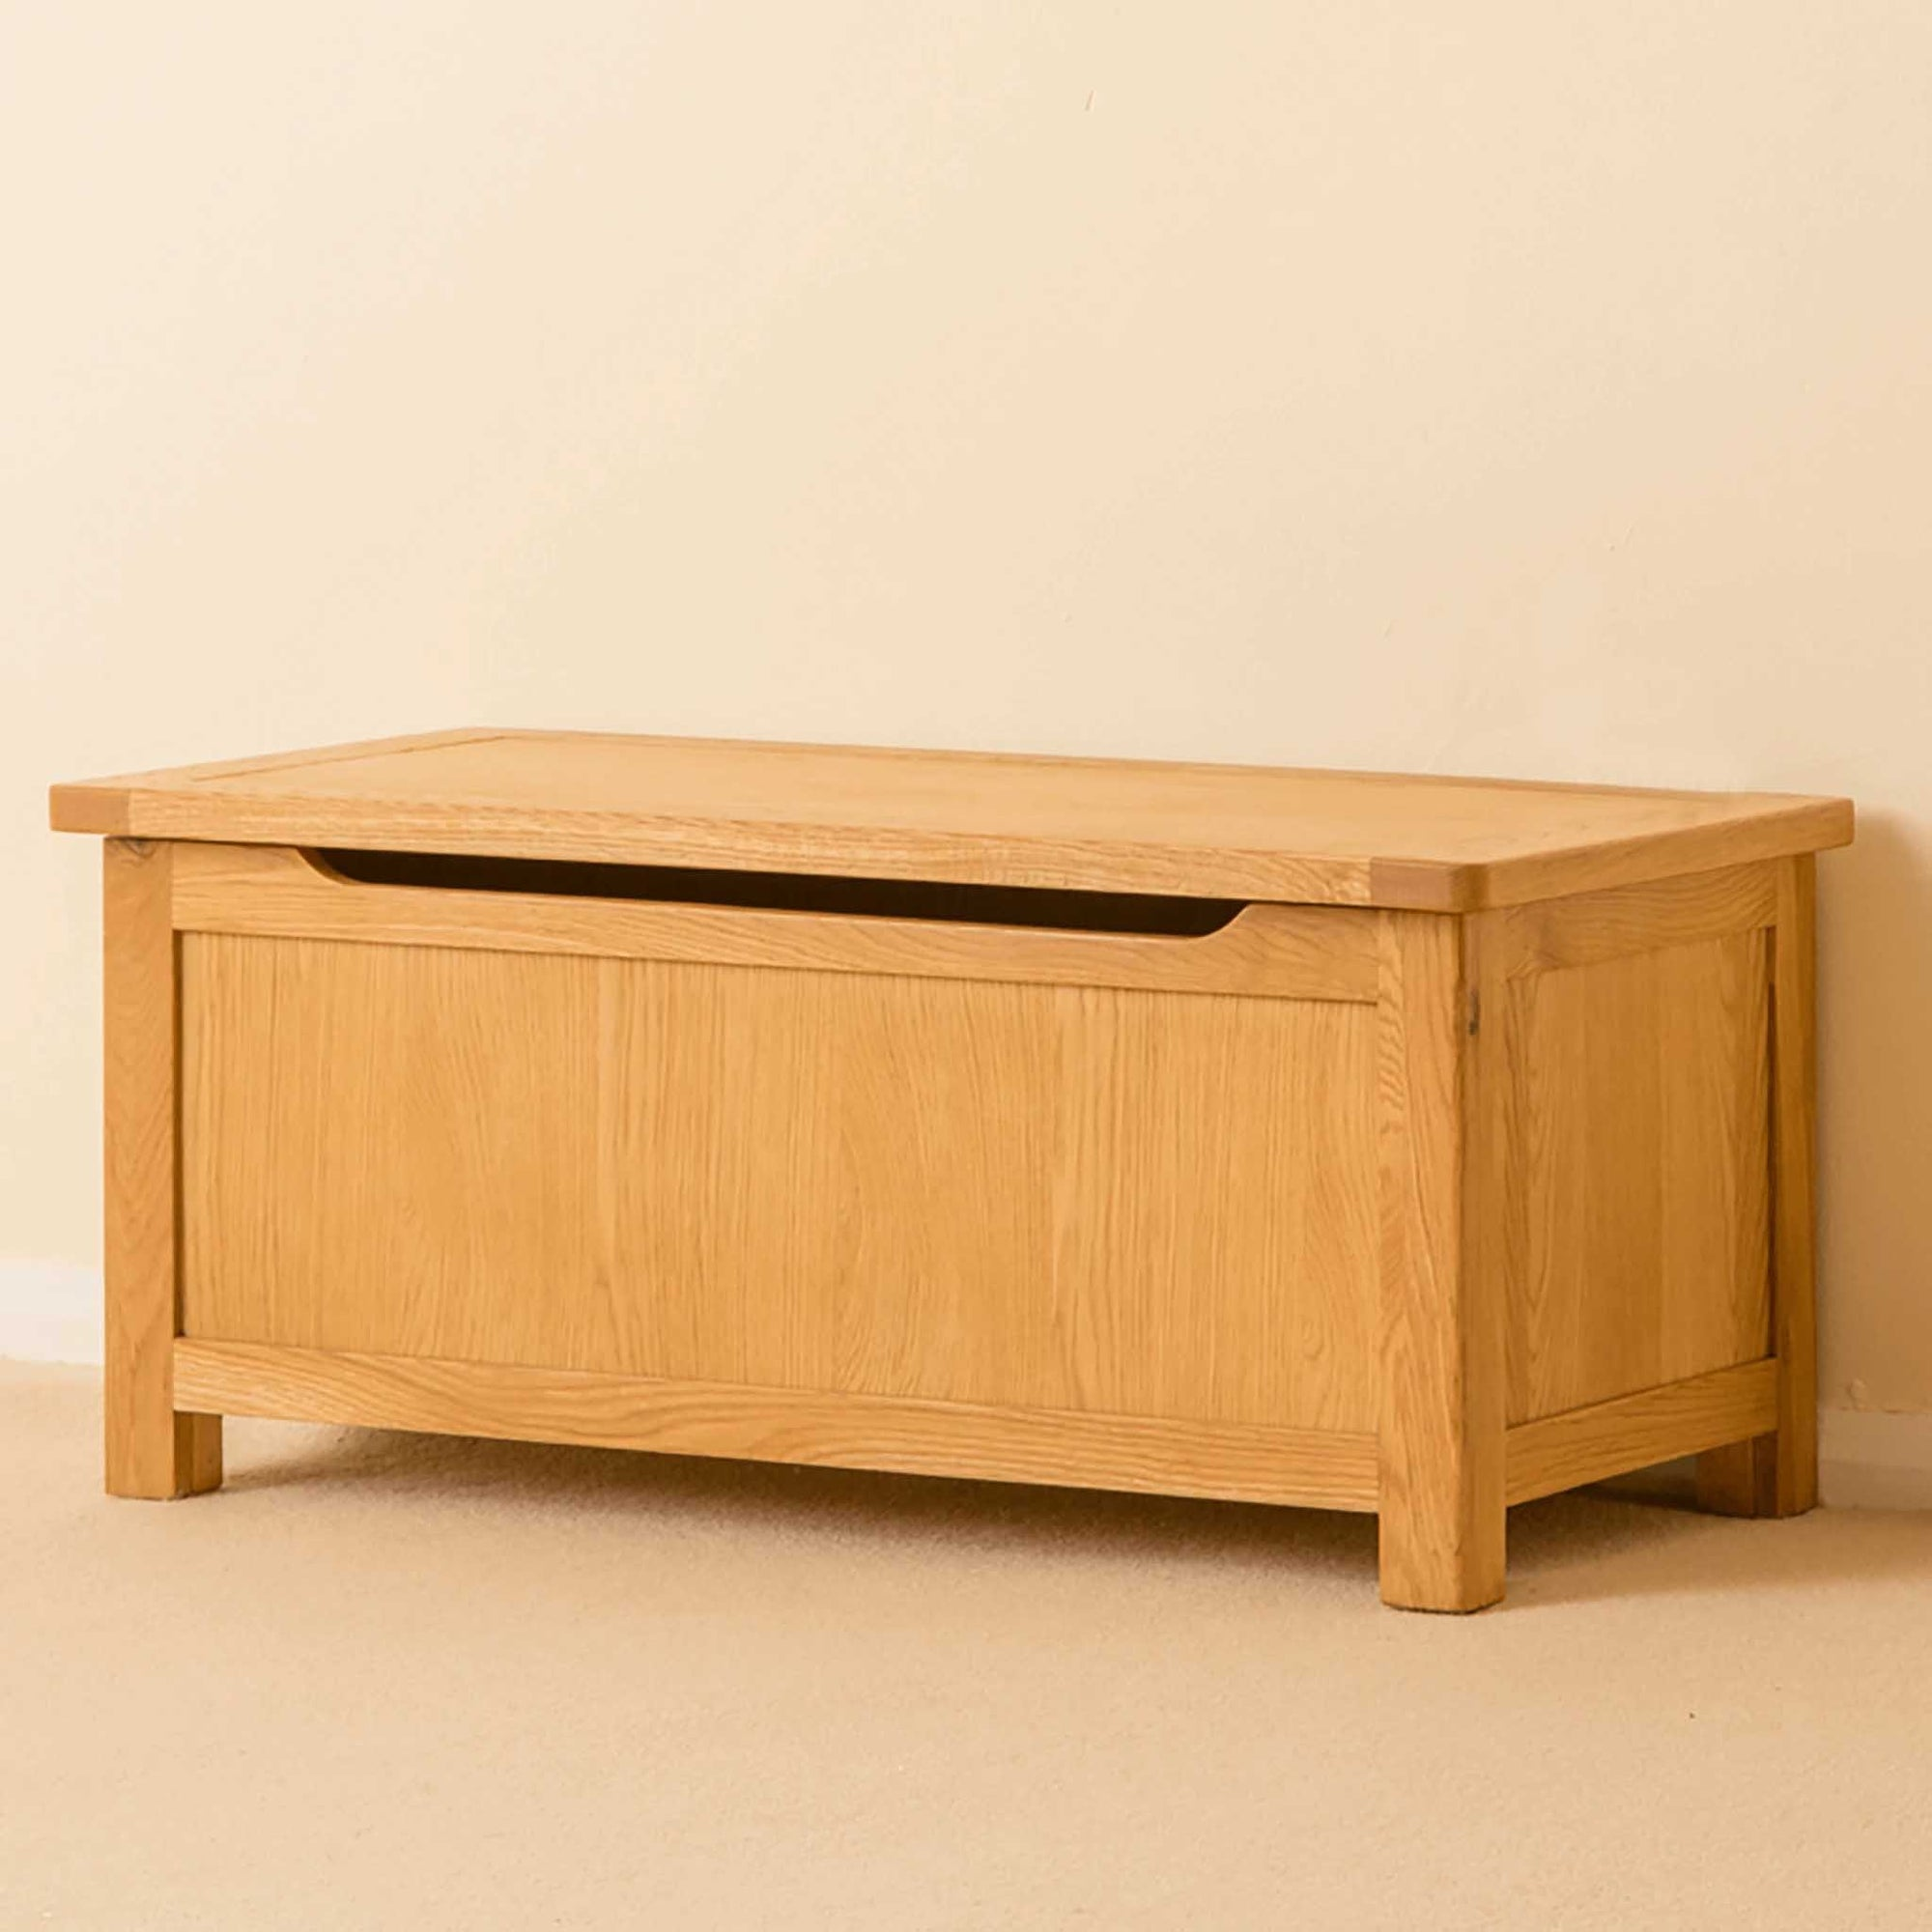 Roseland Oak Blanket Box by Roseland Furniture